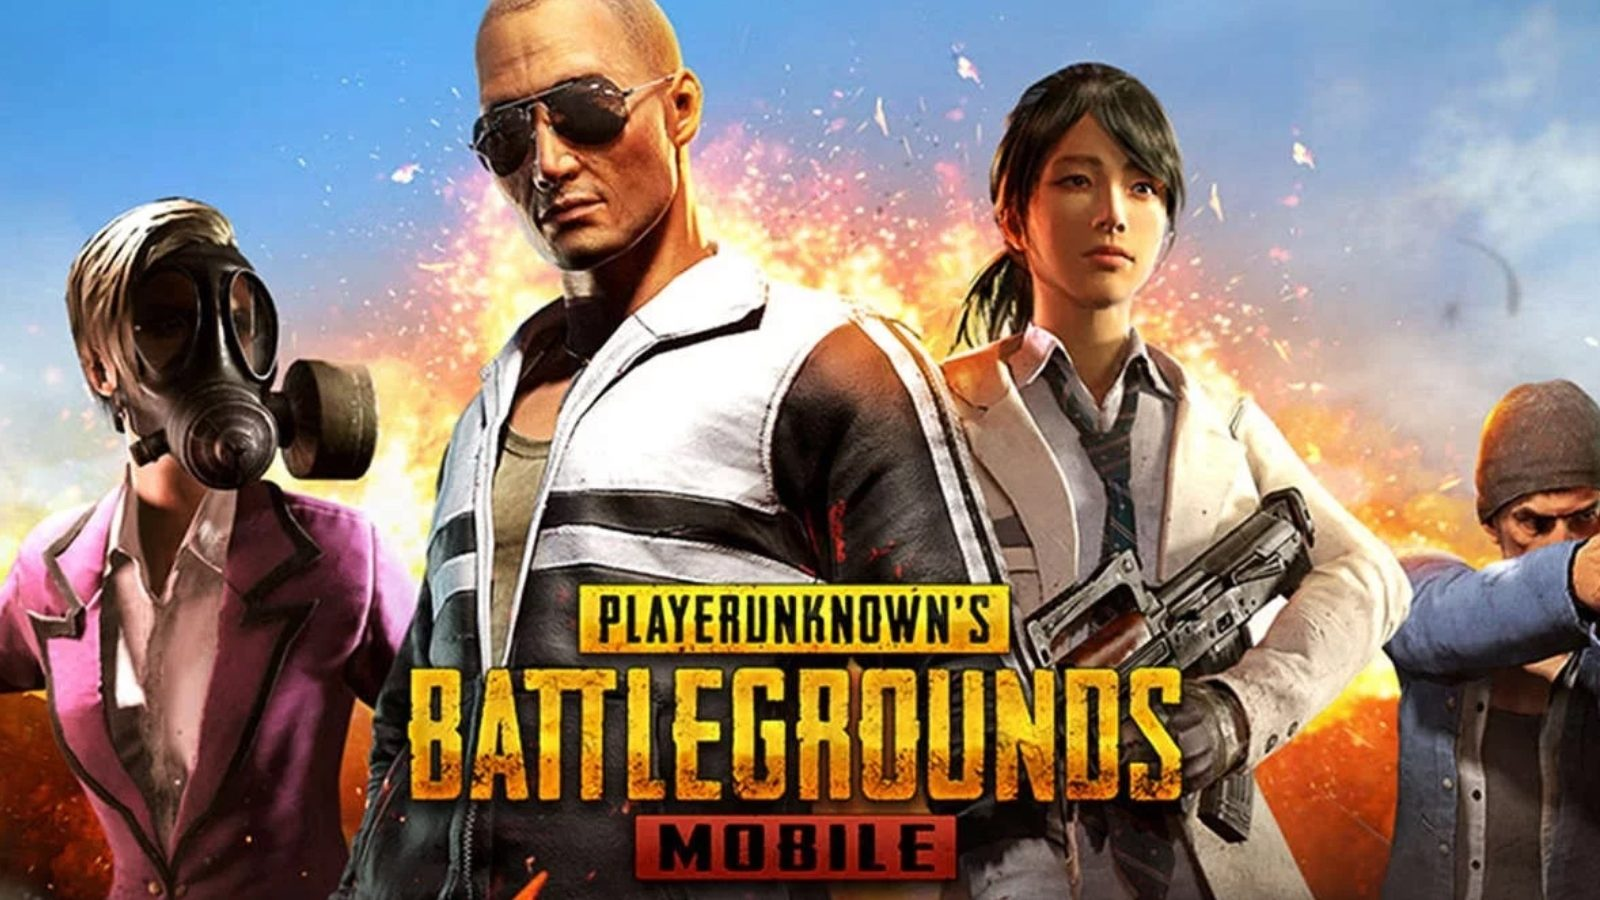 pubg-mobile-update-first-person-battle-royale-pass-esports-gaming